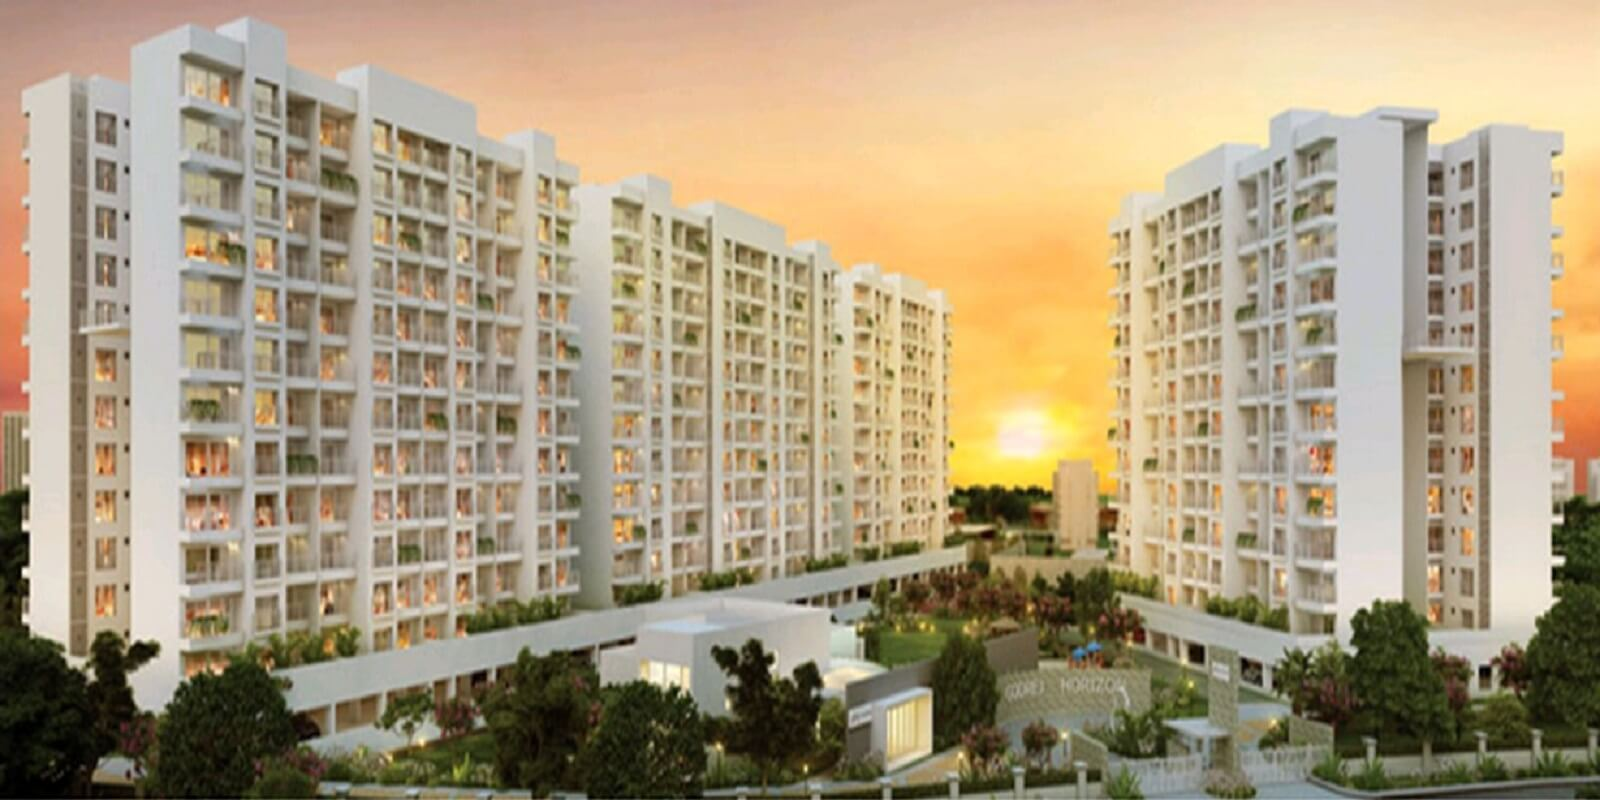 godrej horizon project large image1